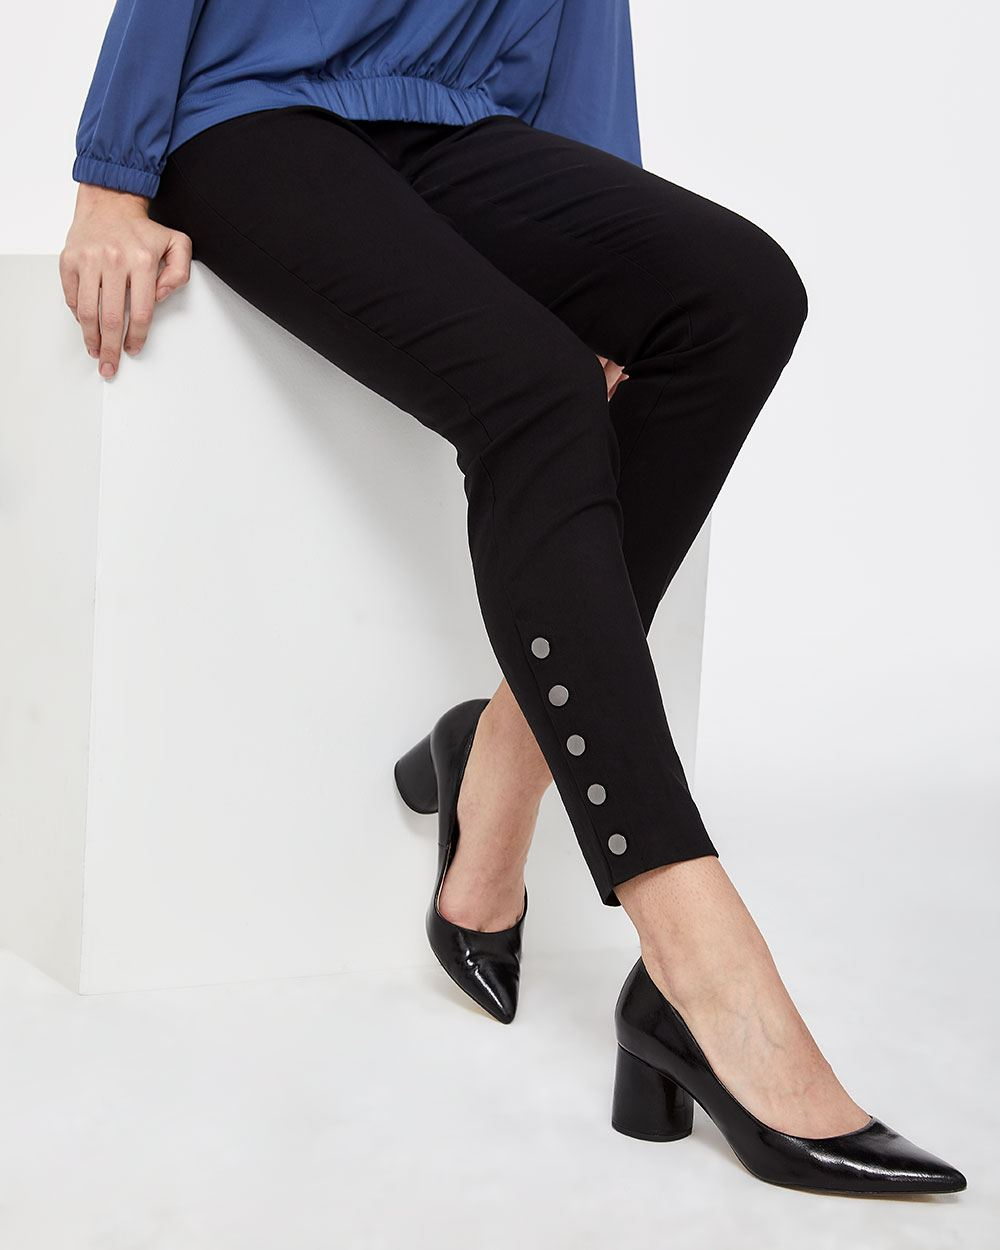 The Petite Iconic Slim Leg Pants with Side Snaps